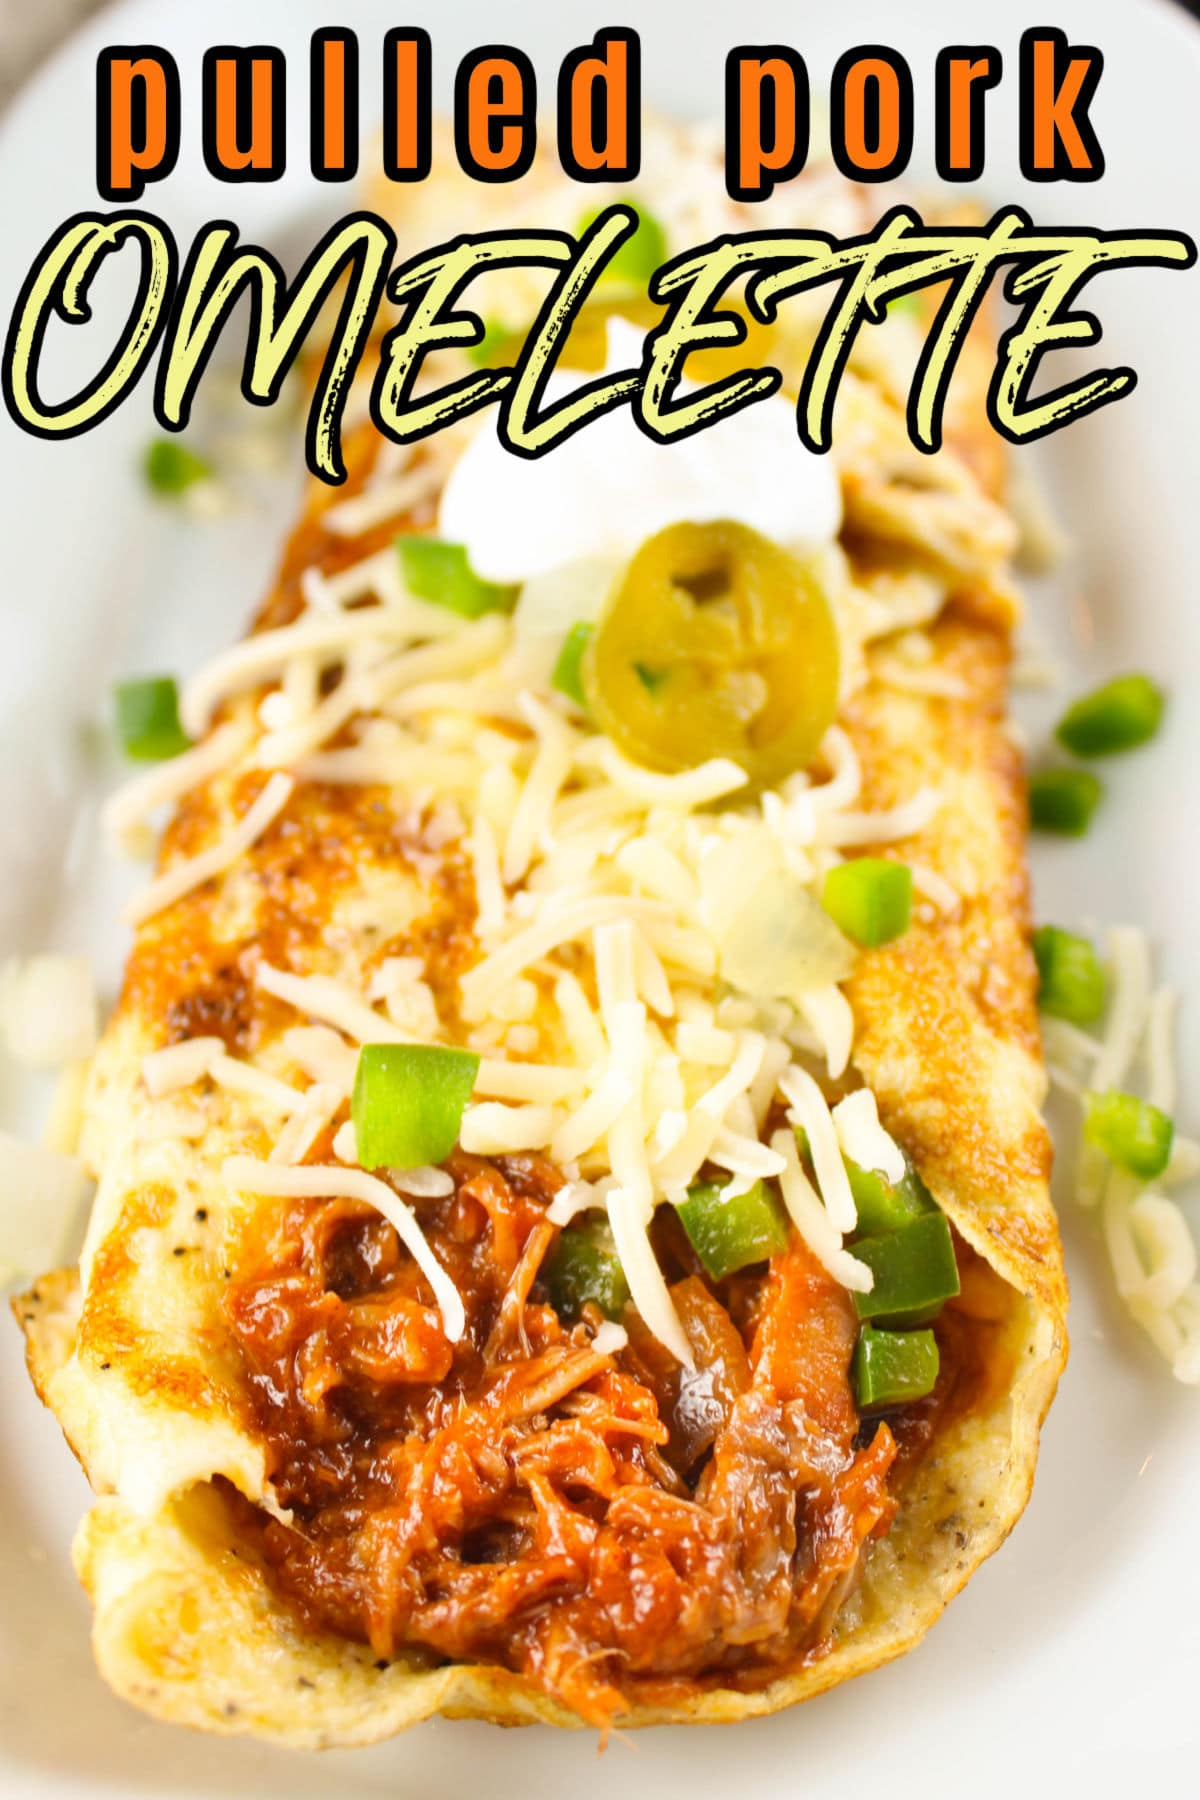 This BBQ Pulled Pork Omelette is a new favorite breakfast recipe in our house! Meaty, sauce, spicy- so much deliciousness! And if you've never made an omelette - no worries - I can walk you through it! So easy!  via @foodhussy